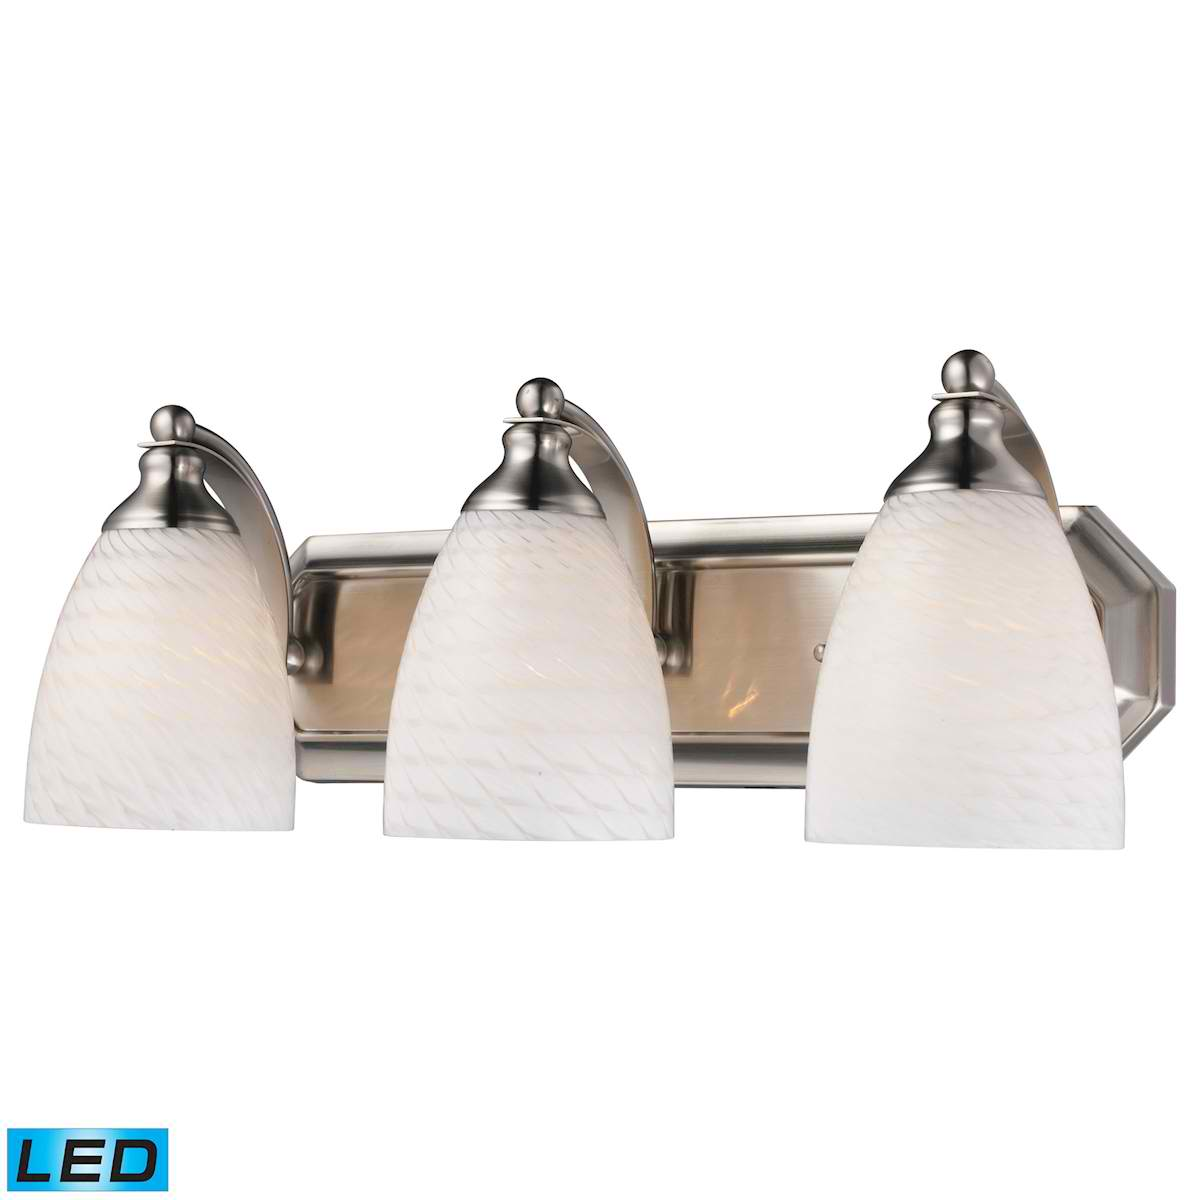 3 Light Vanity in Satin Nickel and White Swirl Glass - LED, 800 Lumens (2400 Lumens Total) with Full Scale